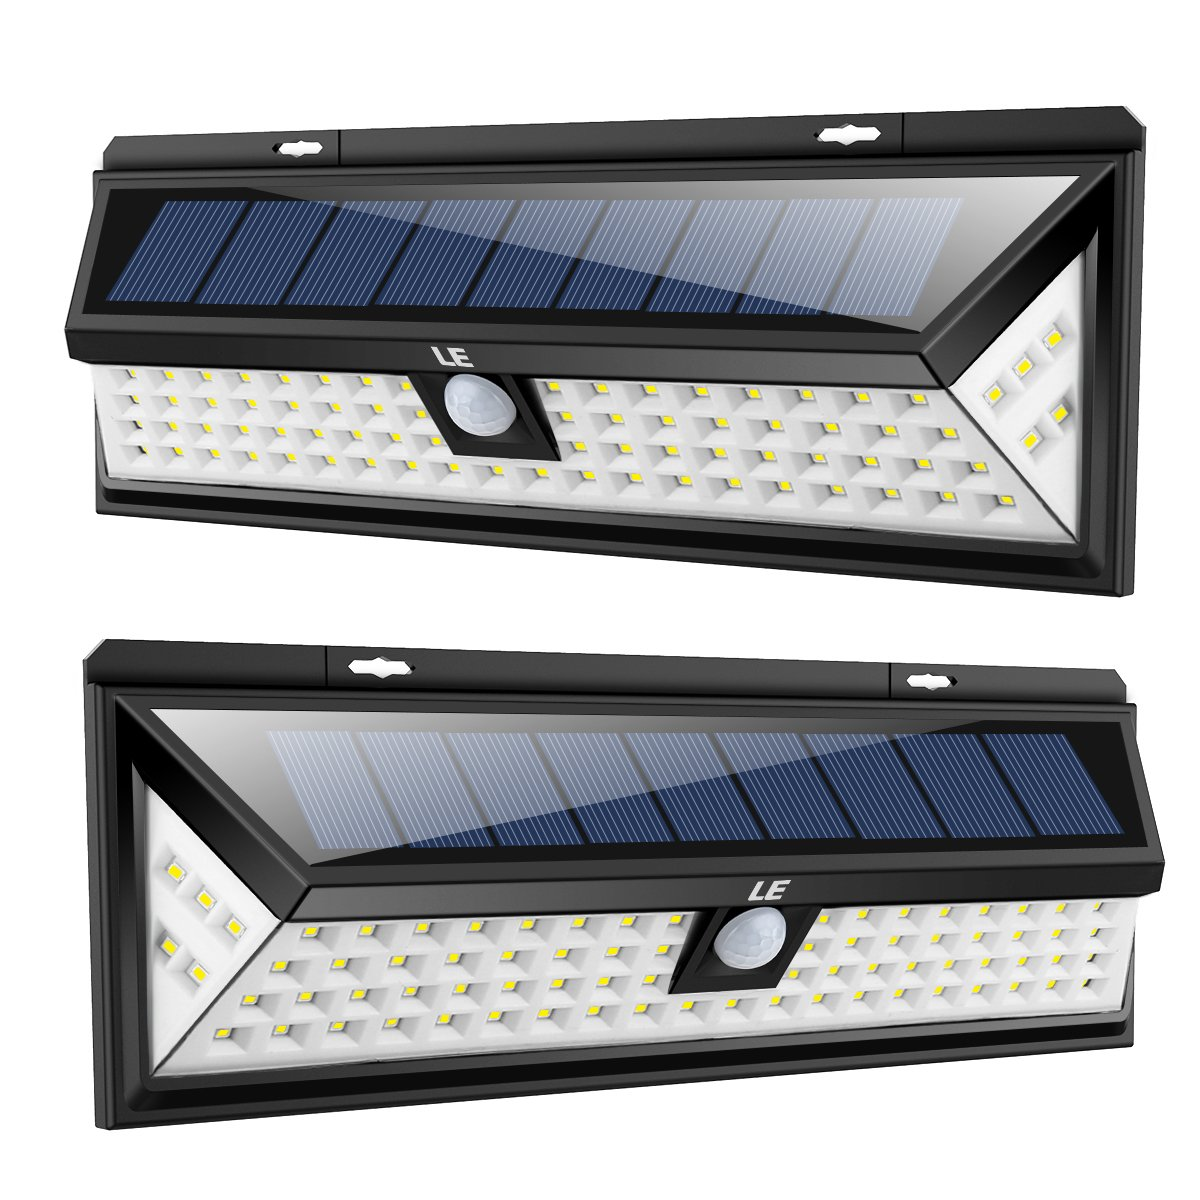 LE 80 LEDs Super Bright Solar Light Outdoor, Motion Sensor Solar Powered Lights, Waterproof Wall Lights and Wide Lighting Angle for Garage Patio Garden Driveway Yard (2 Pack) by Lighting EVER